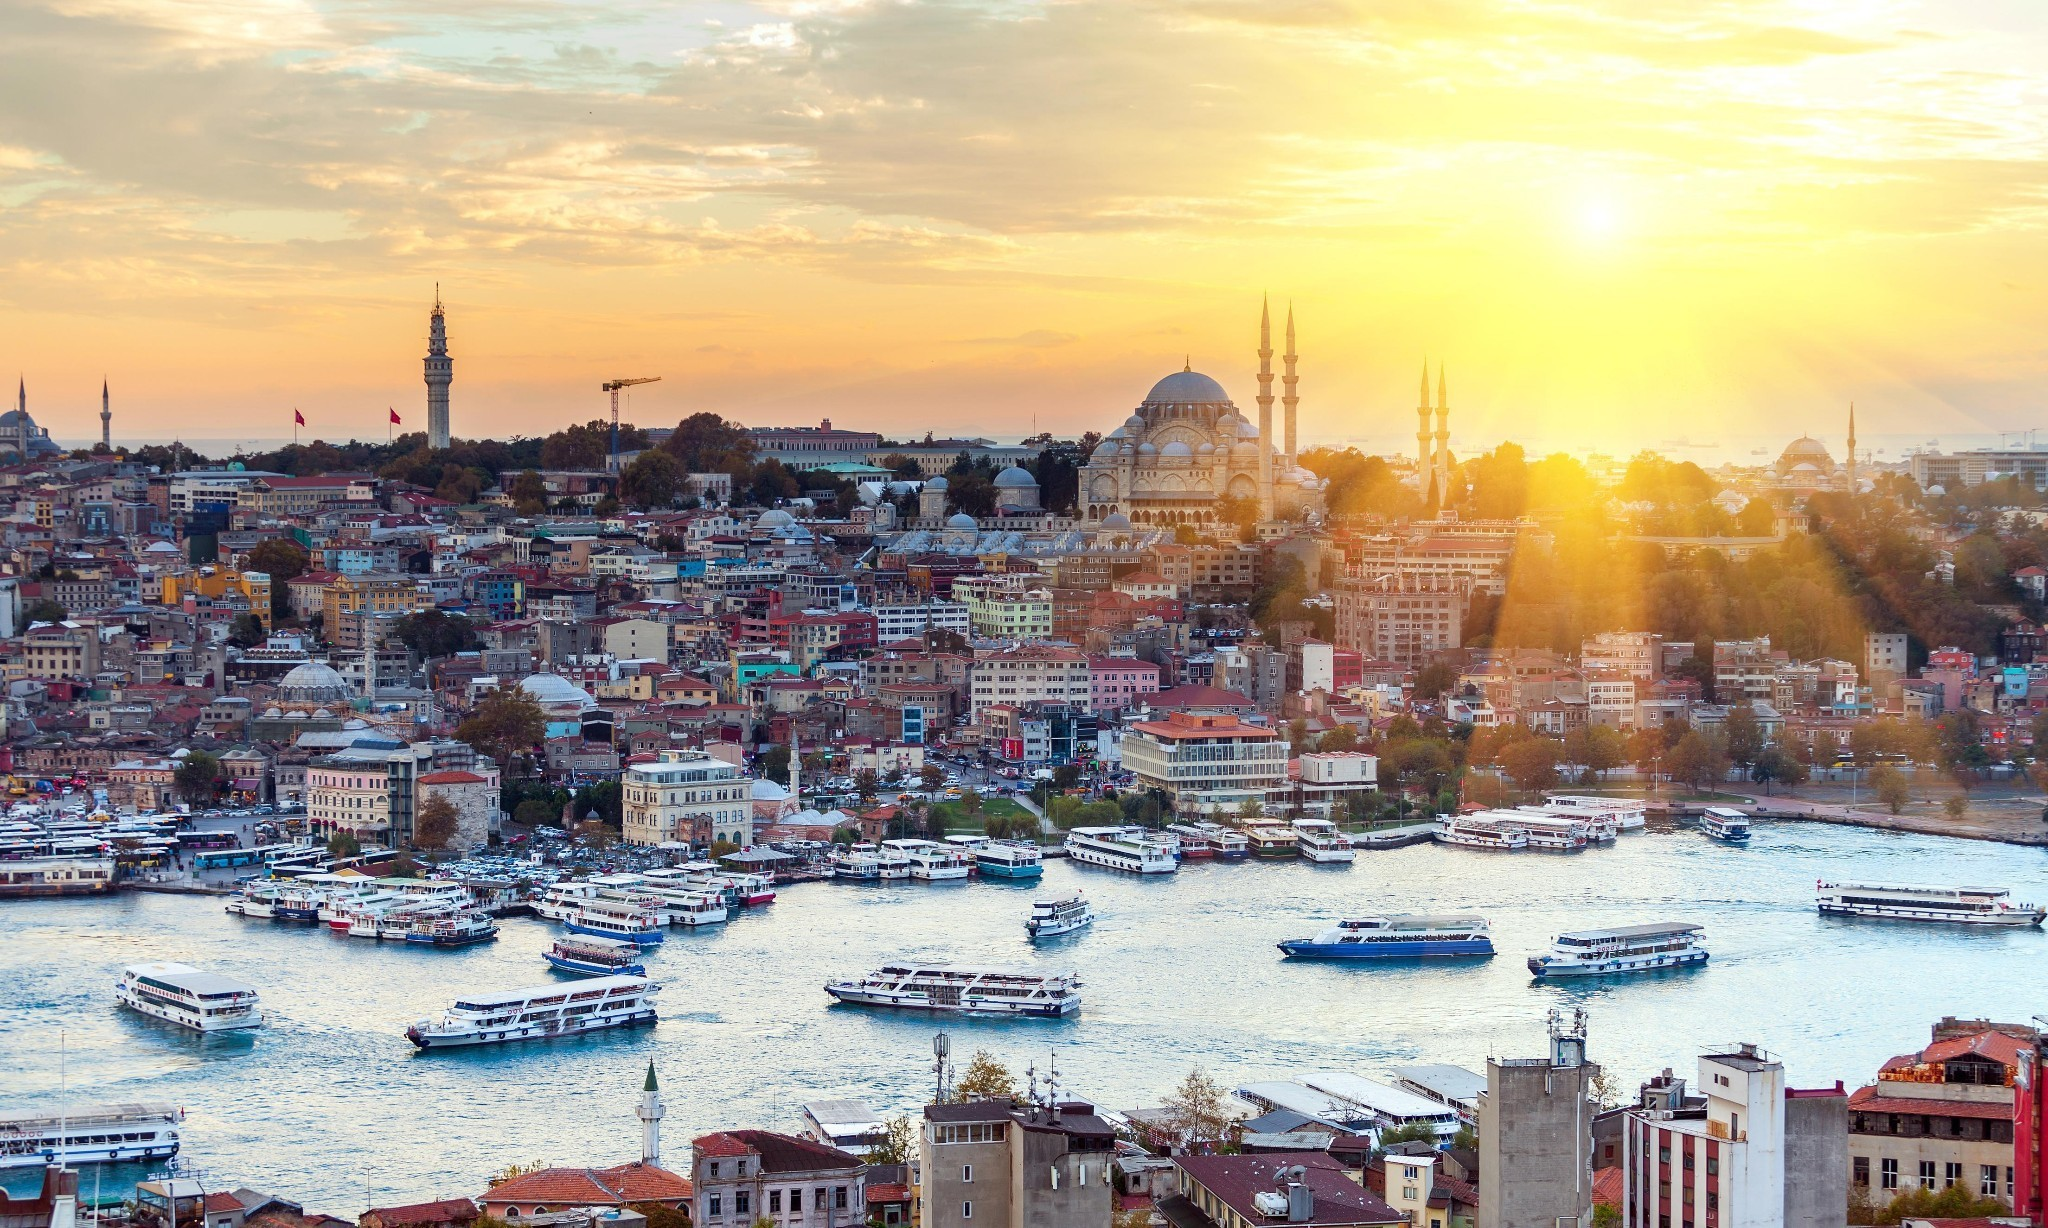 'Standing by the Bosphorus gives me goosebumps': Jason Goodwin's Istanbul